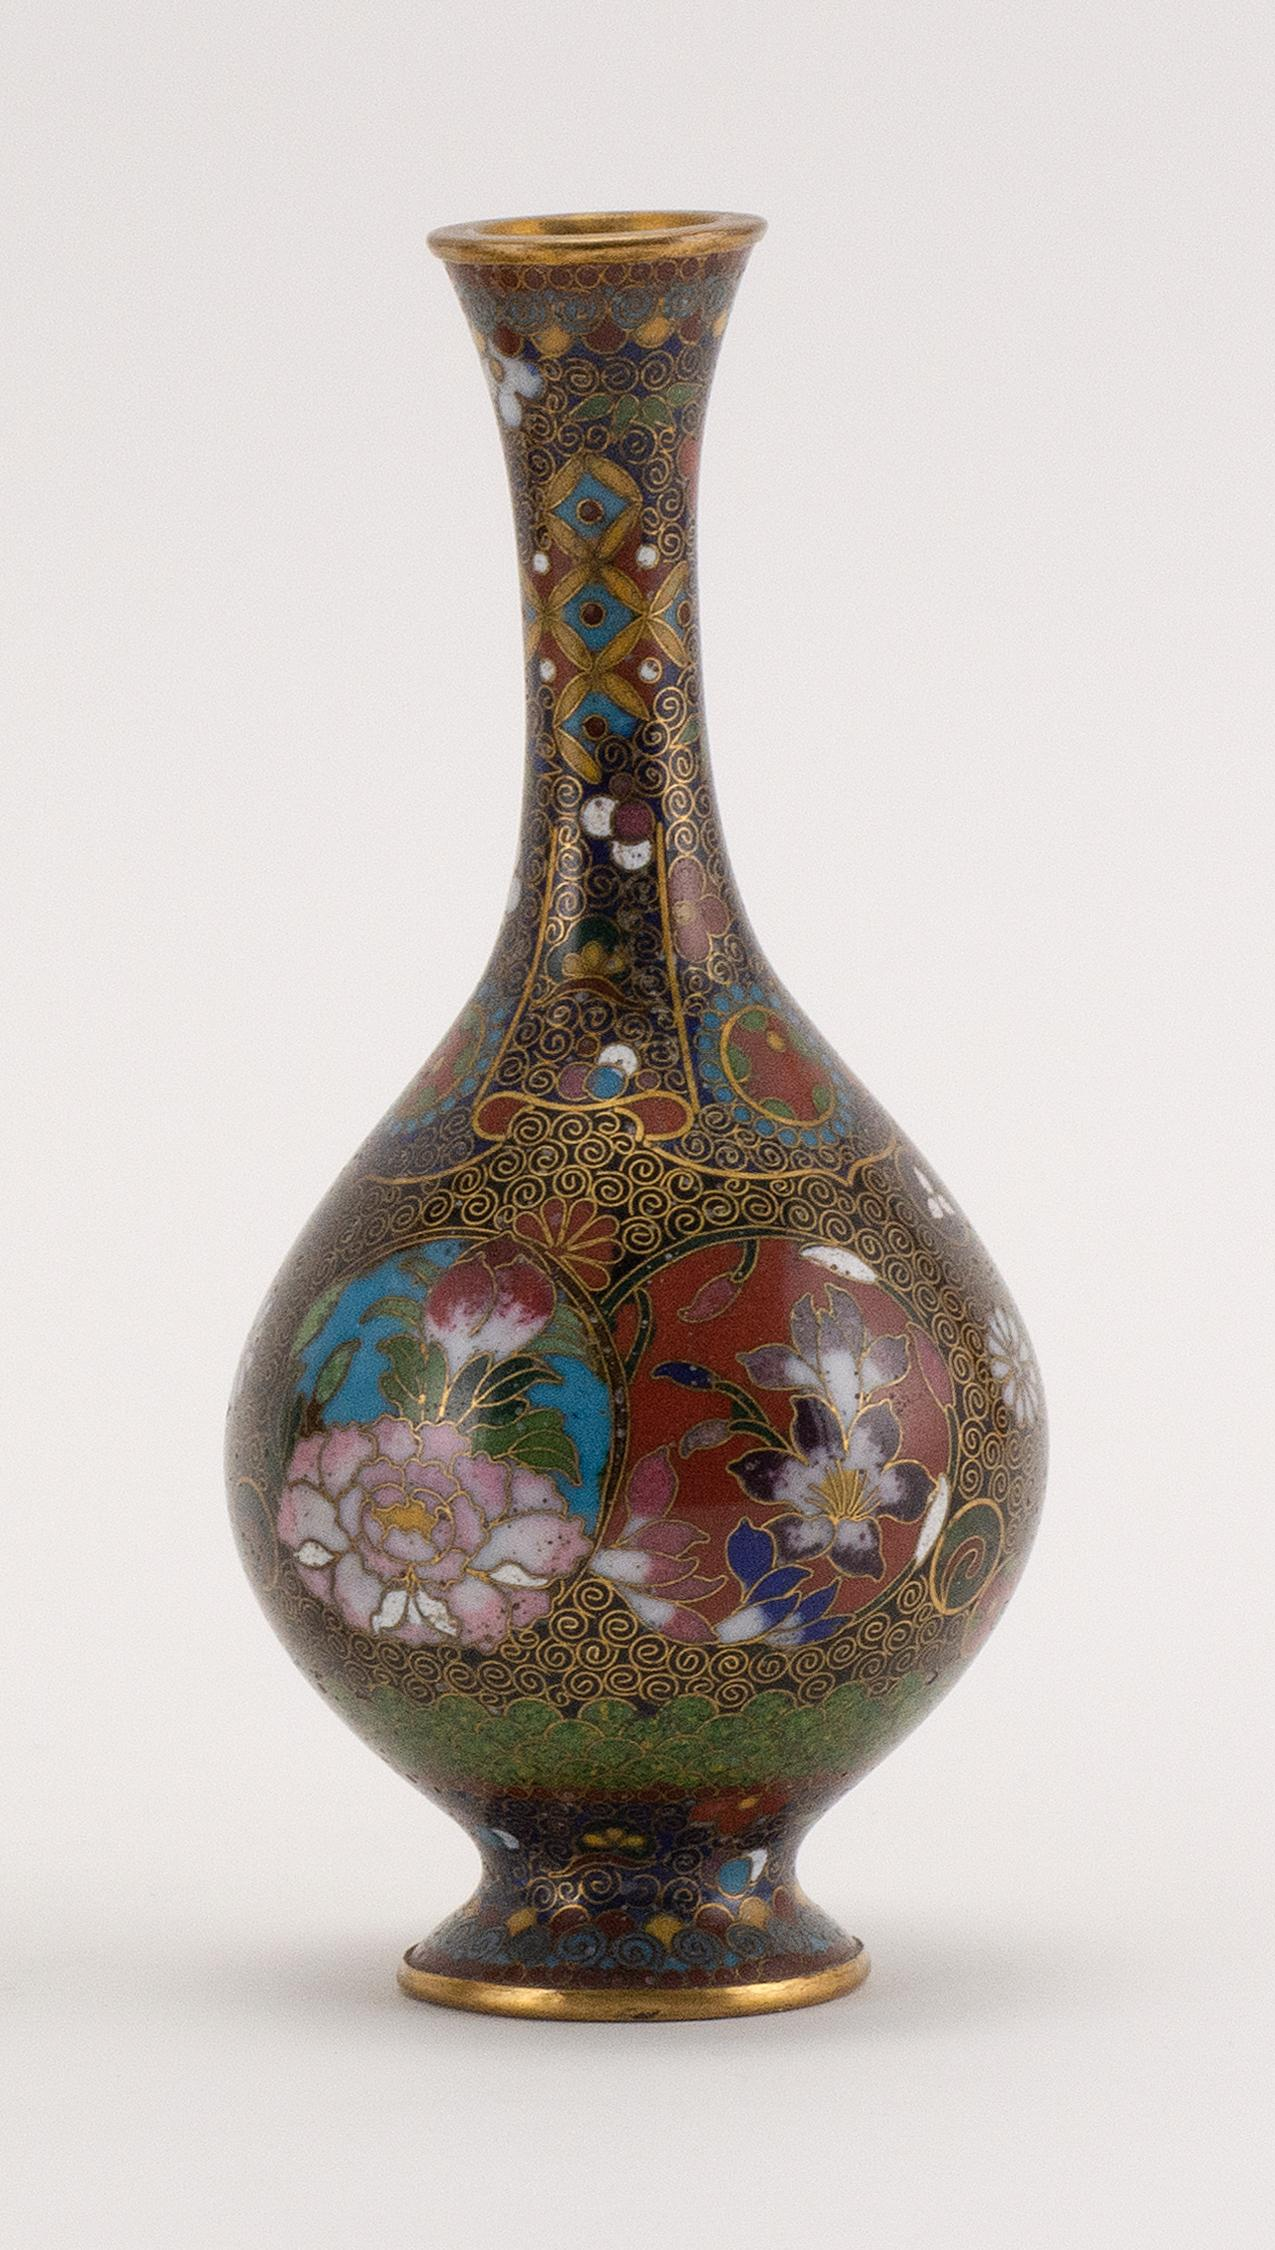 """JAPANESE MINIATURE CLOISONNÉ ENAMEL VASE In bottle form, with an extensive floral design on a black and gilt ground. Height 5""""."""